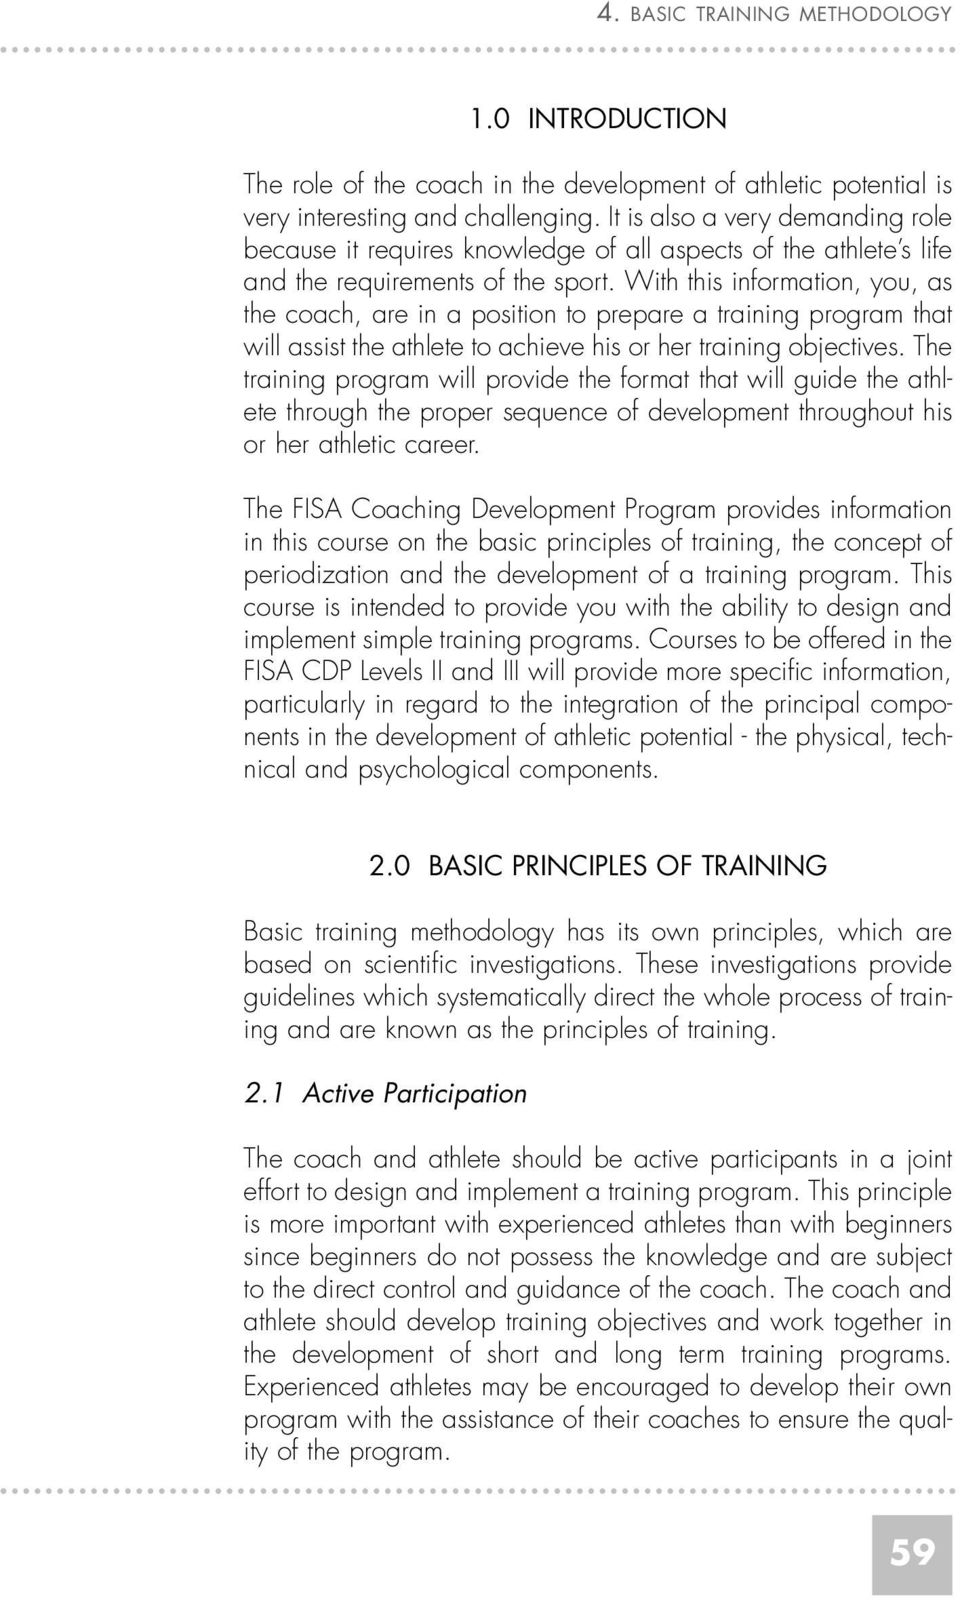 With this information, you, as the coach, are in a position to prepare a training program that will assist the athlete to achieve his or her training objectives.